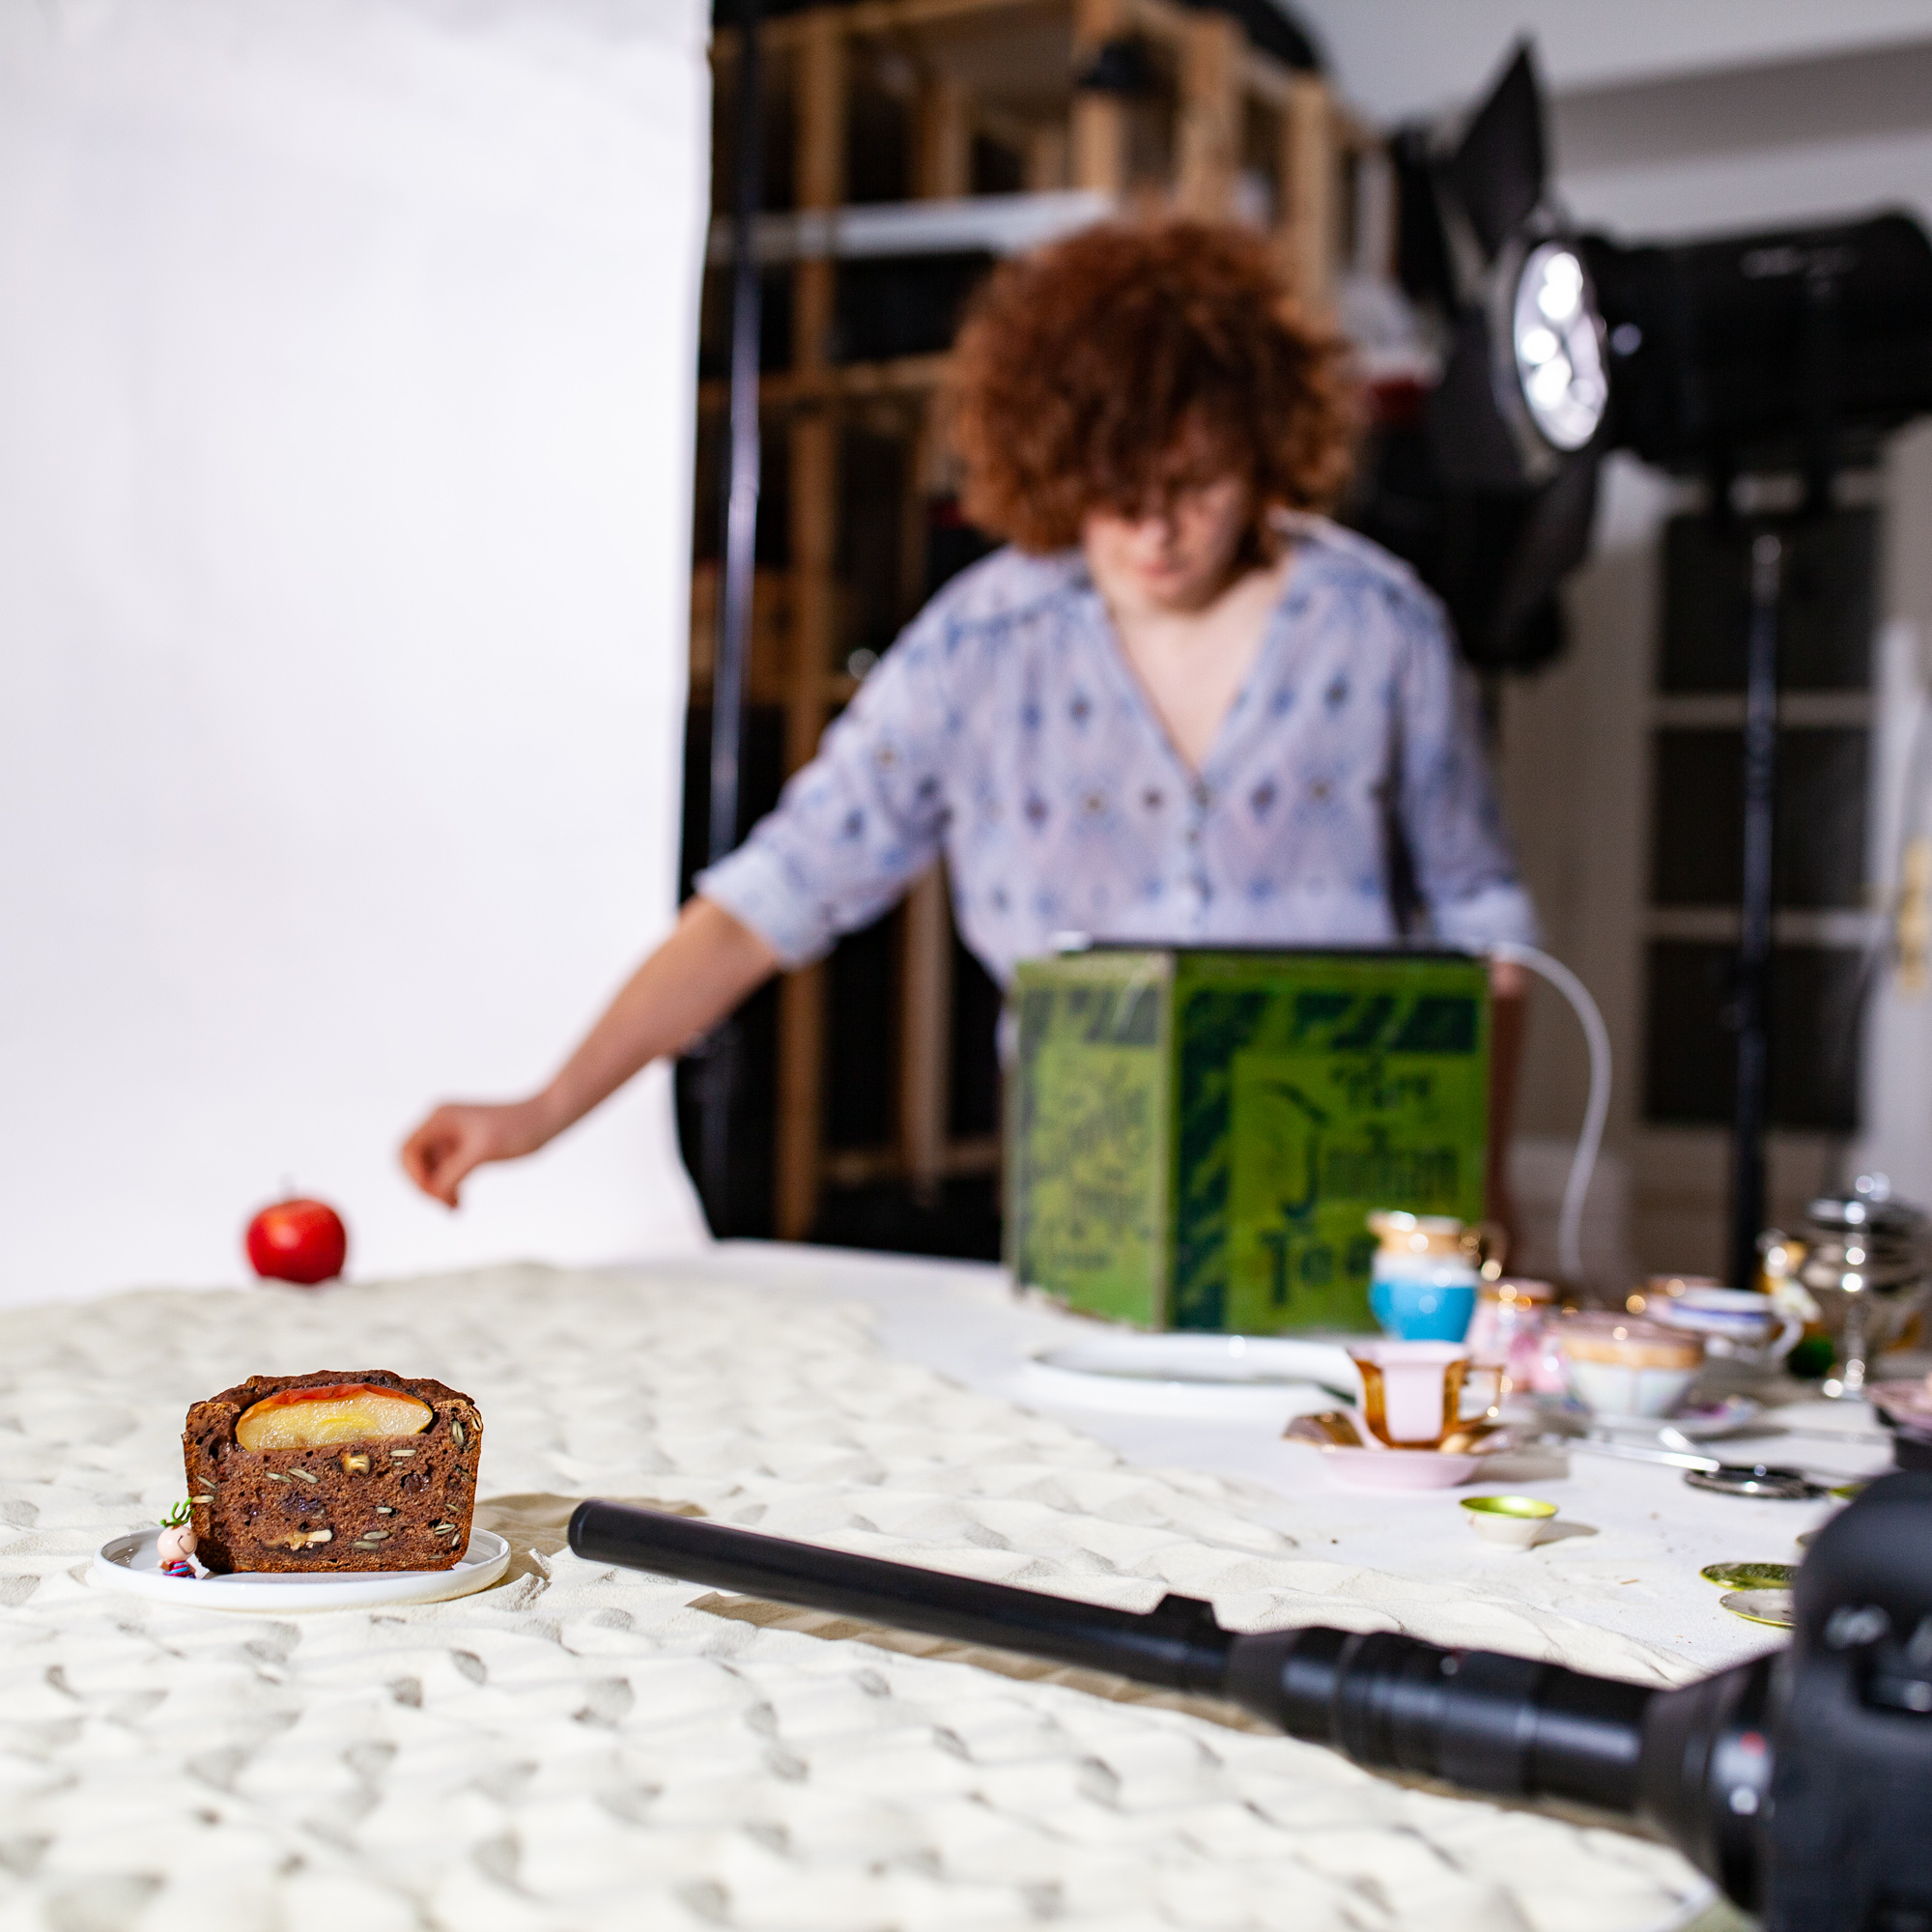 Behind the scenes of foodlydoodlydoo's vegan banana bread recipe. The photo shows the food stylist preparing the scene